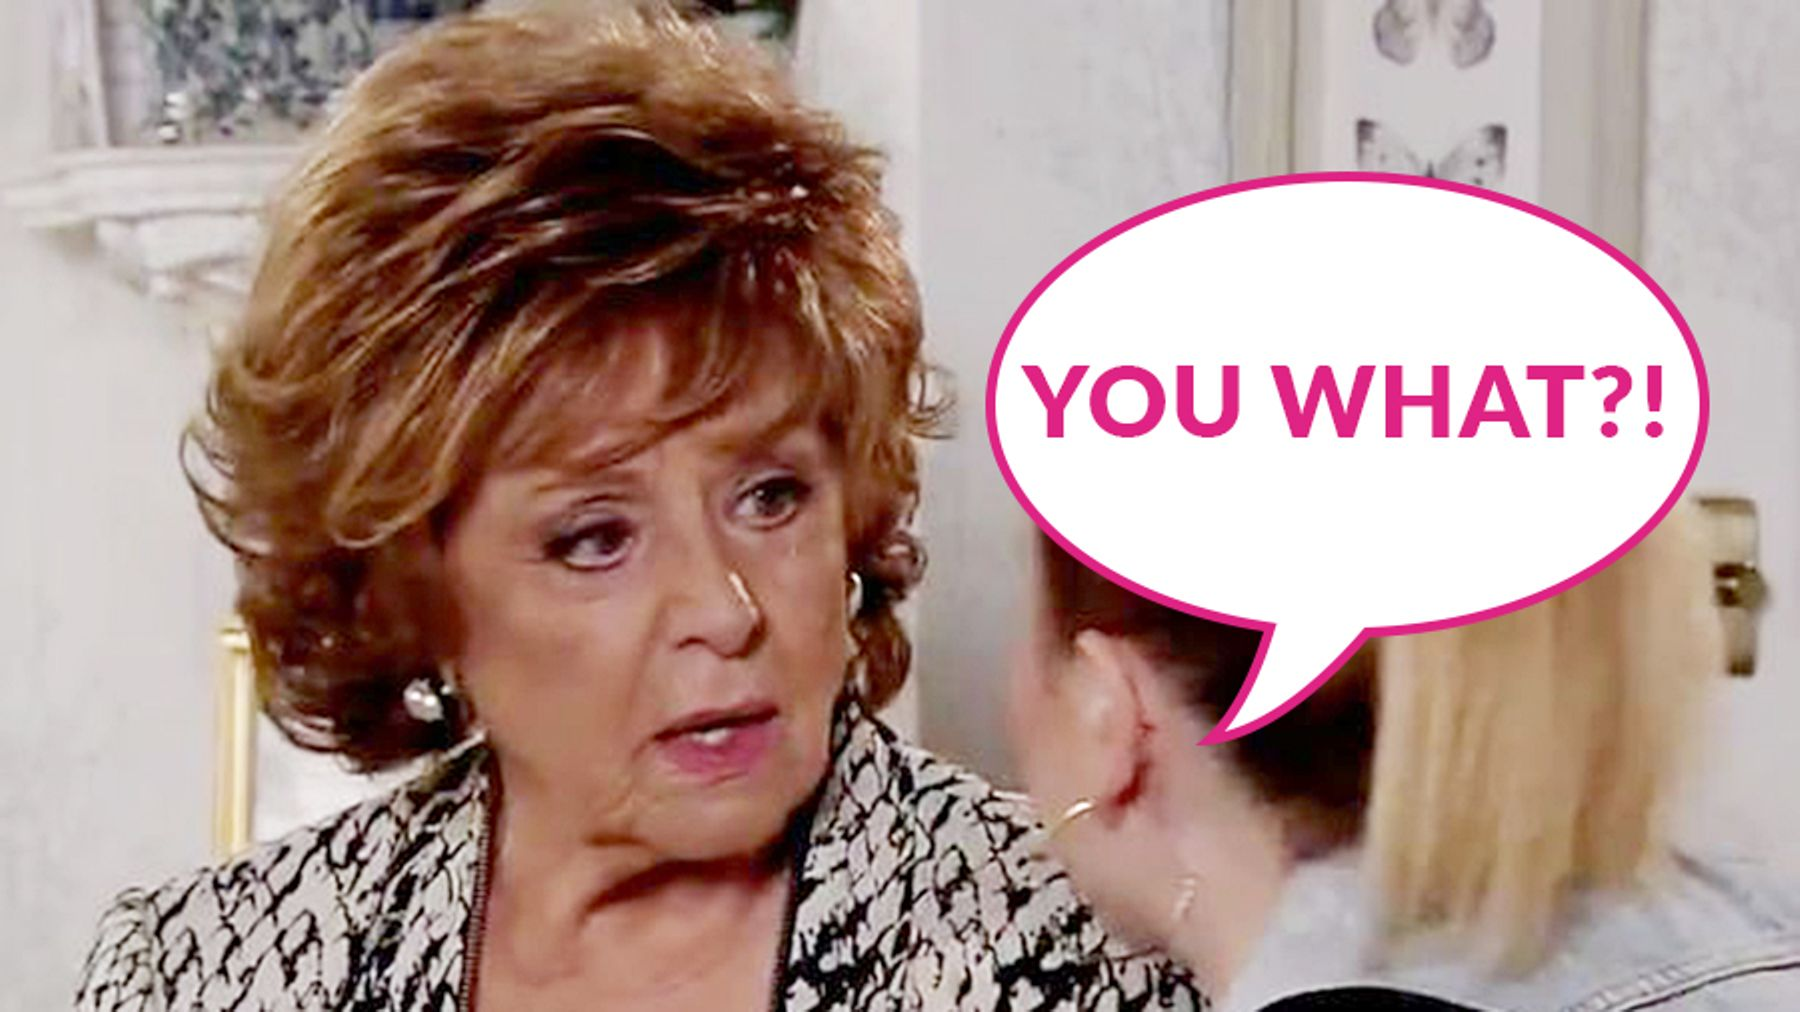 NOO! Corrie's cancelled TONIGHT - and you'll never guess why